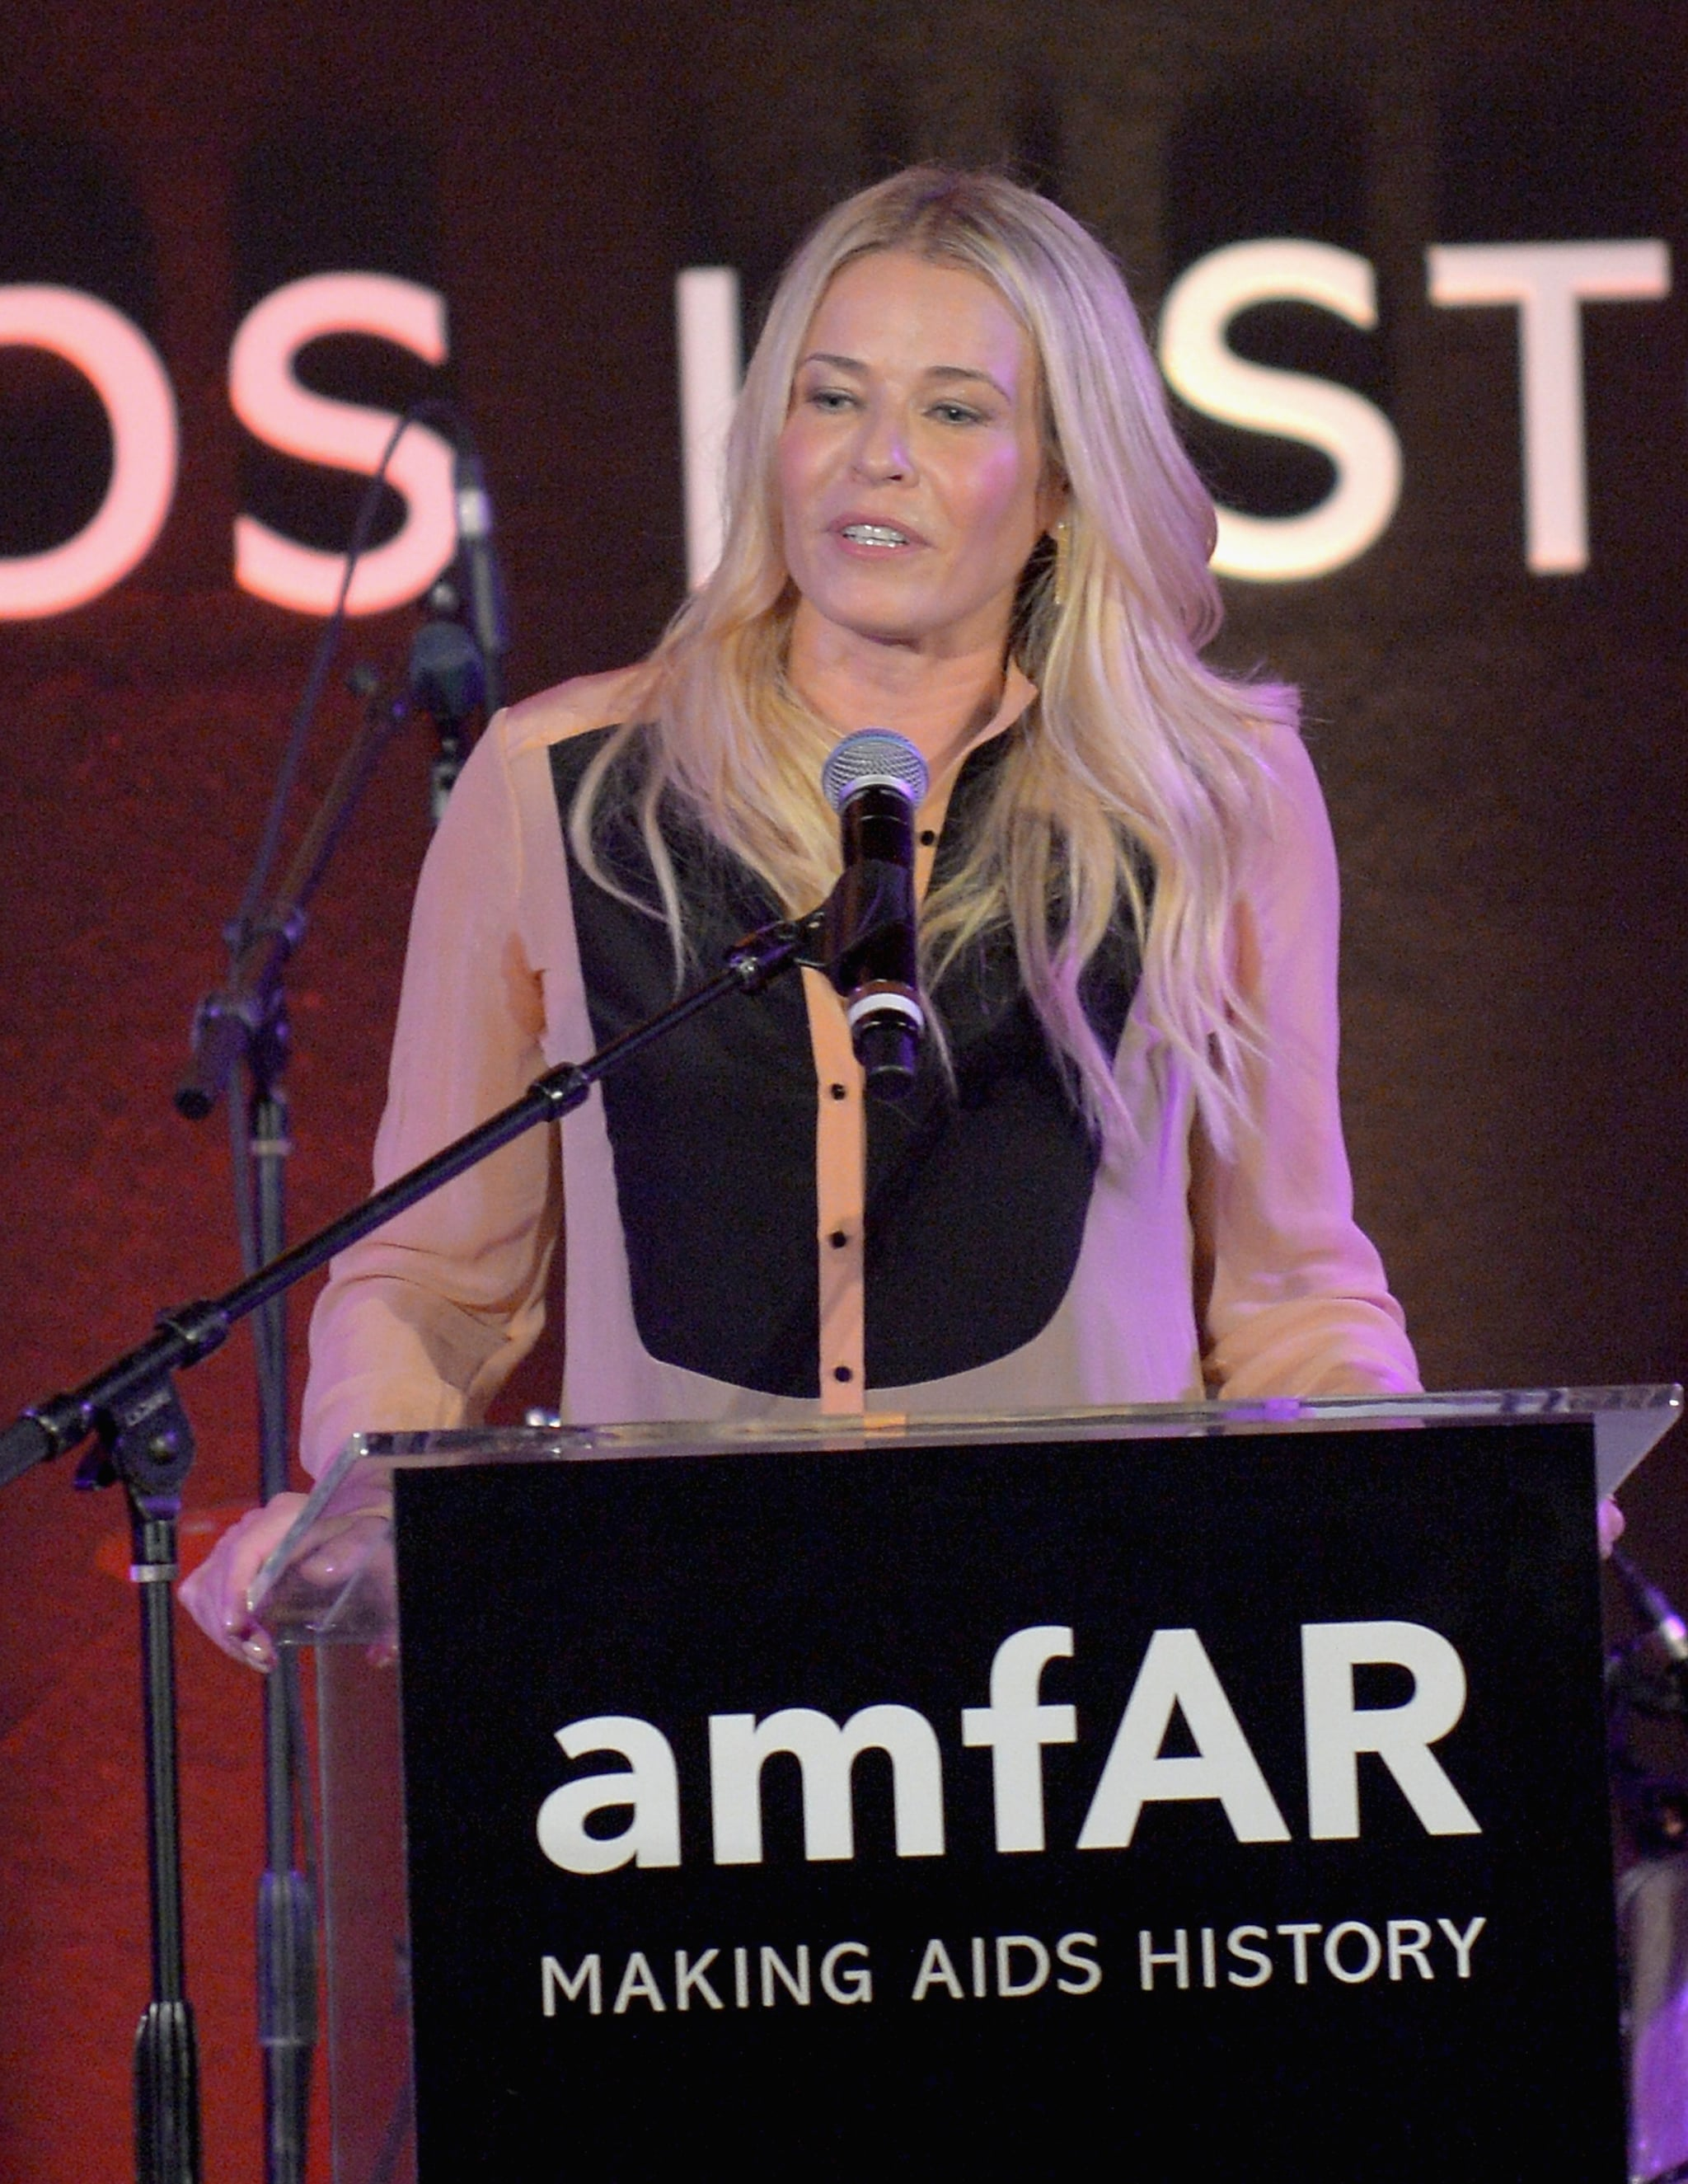 Chelsea Handler appeared on stage at the amfAR Gala in LA.